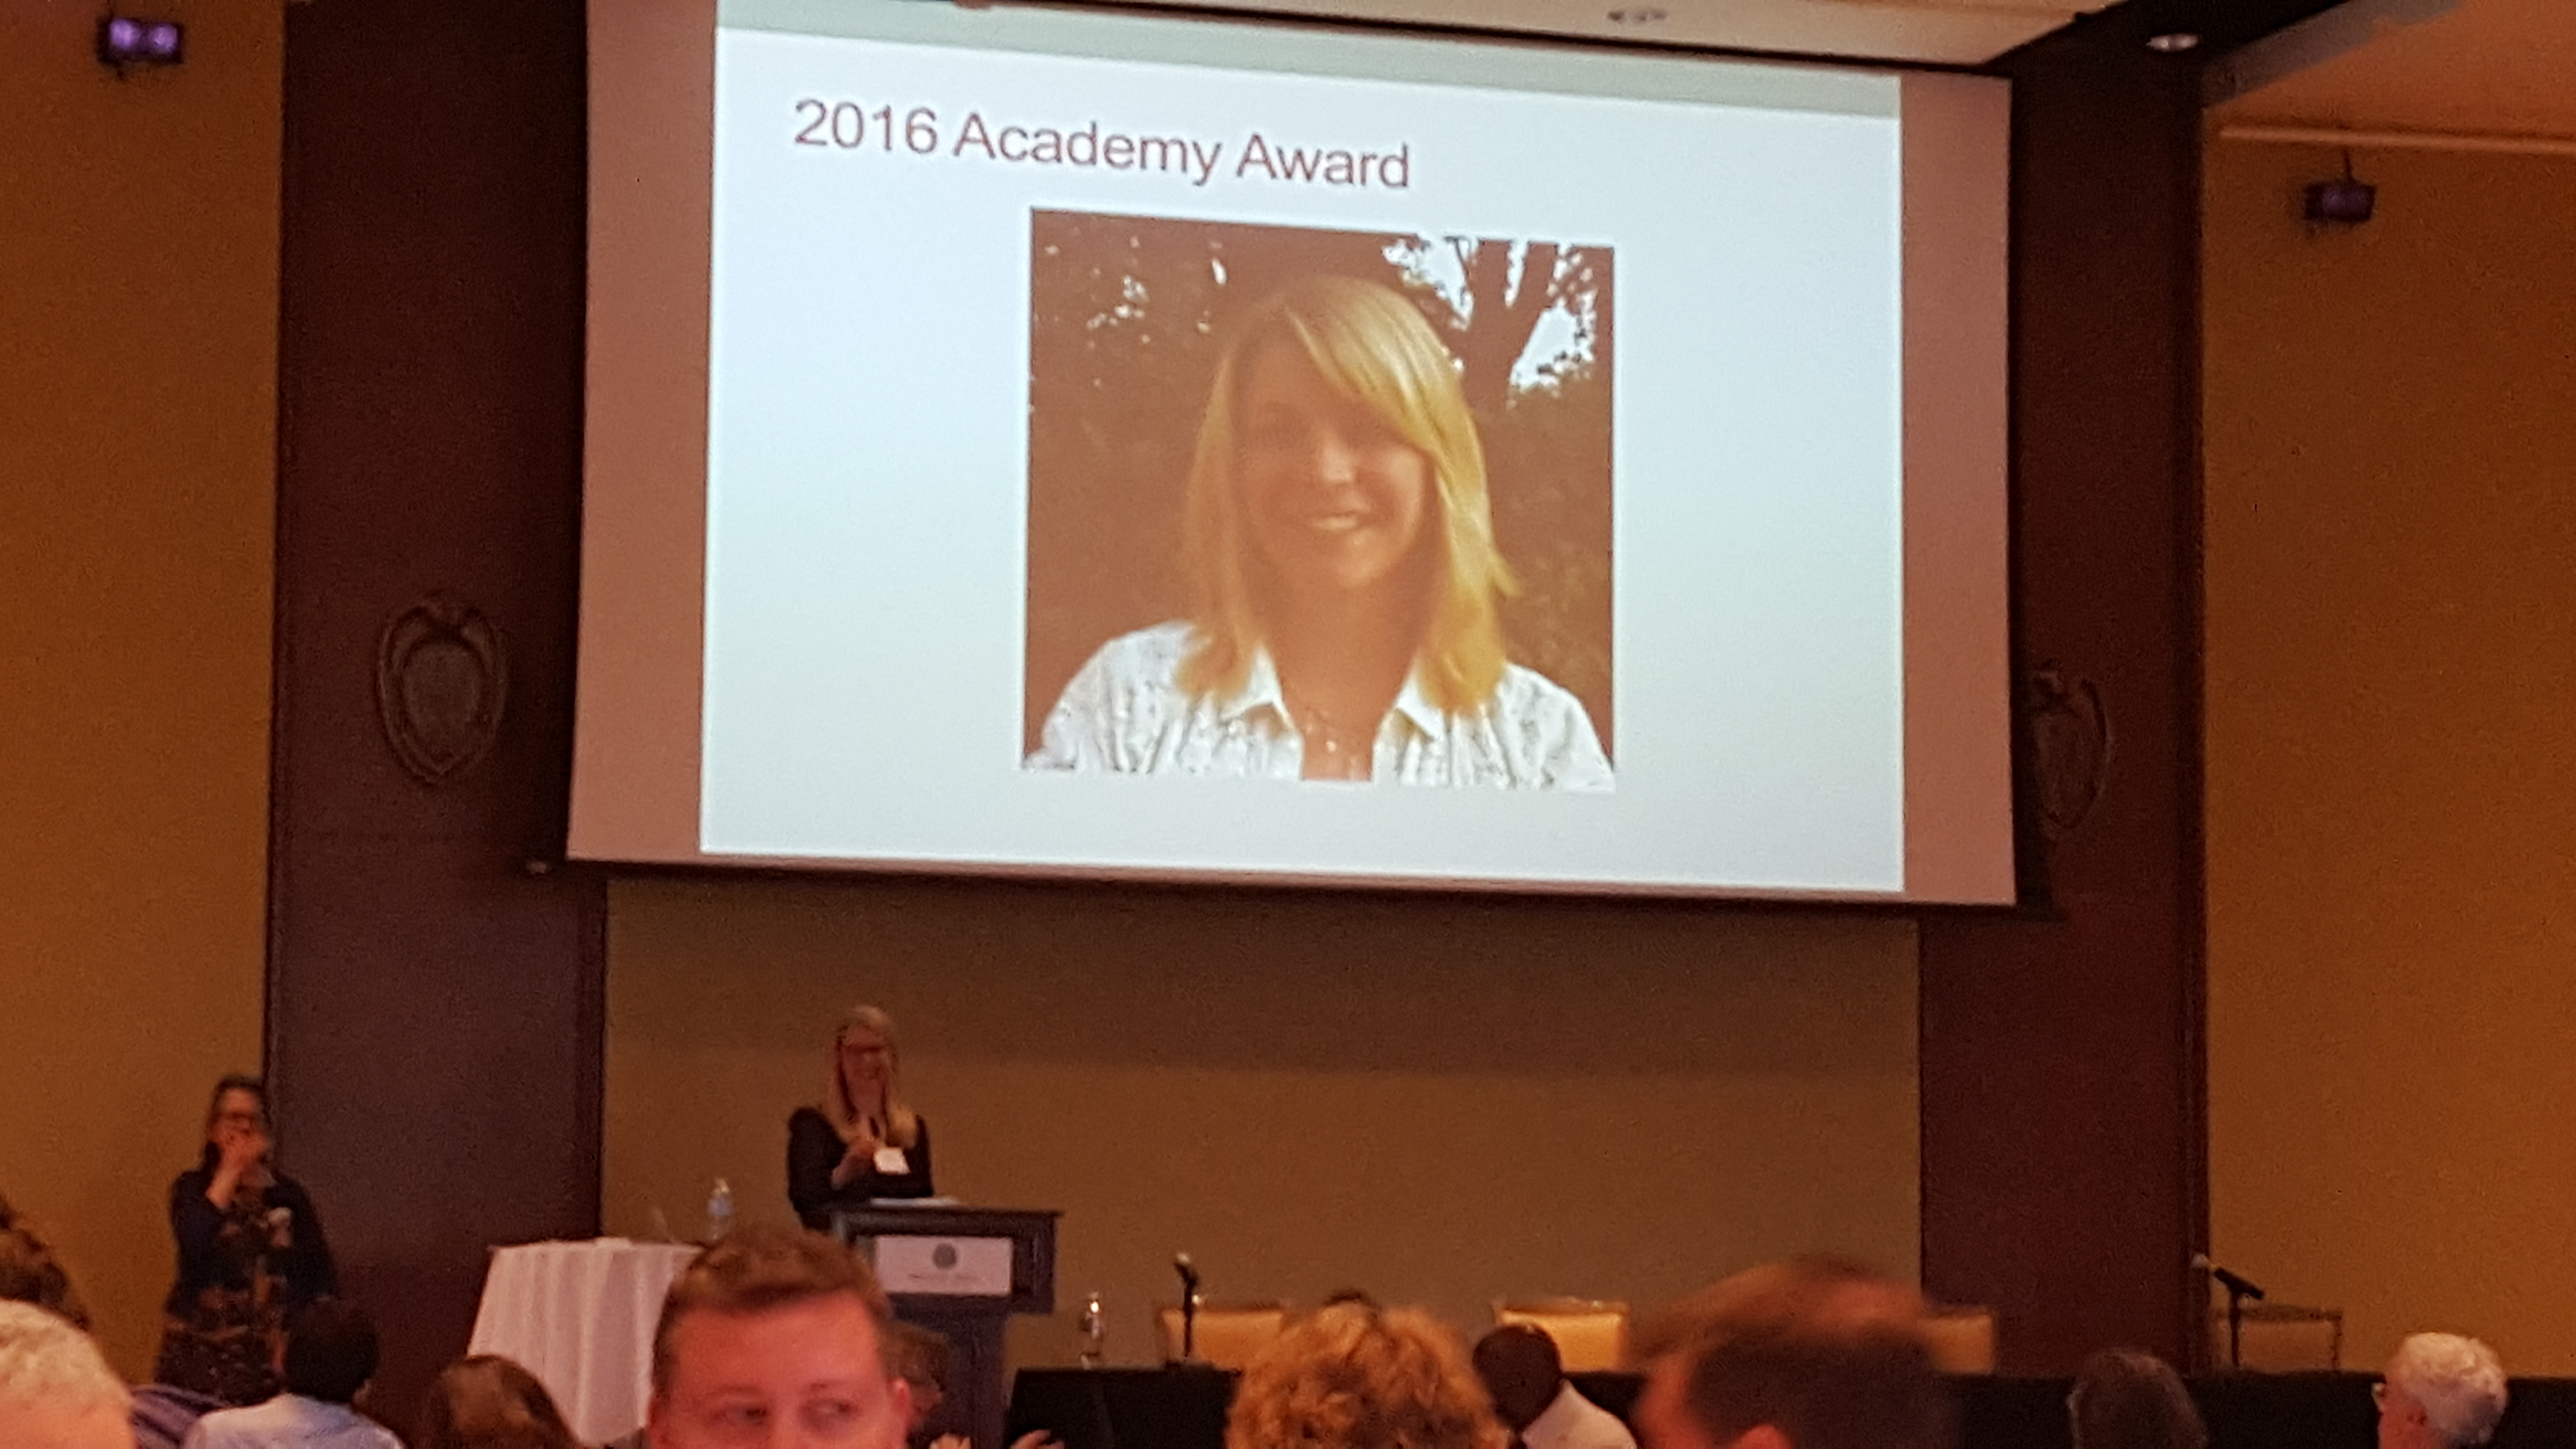 Sarah Miller accepts the Distinguished Fellow award from the Teaching Academy during lunch